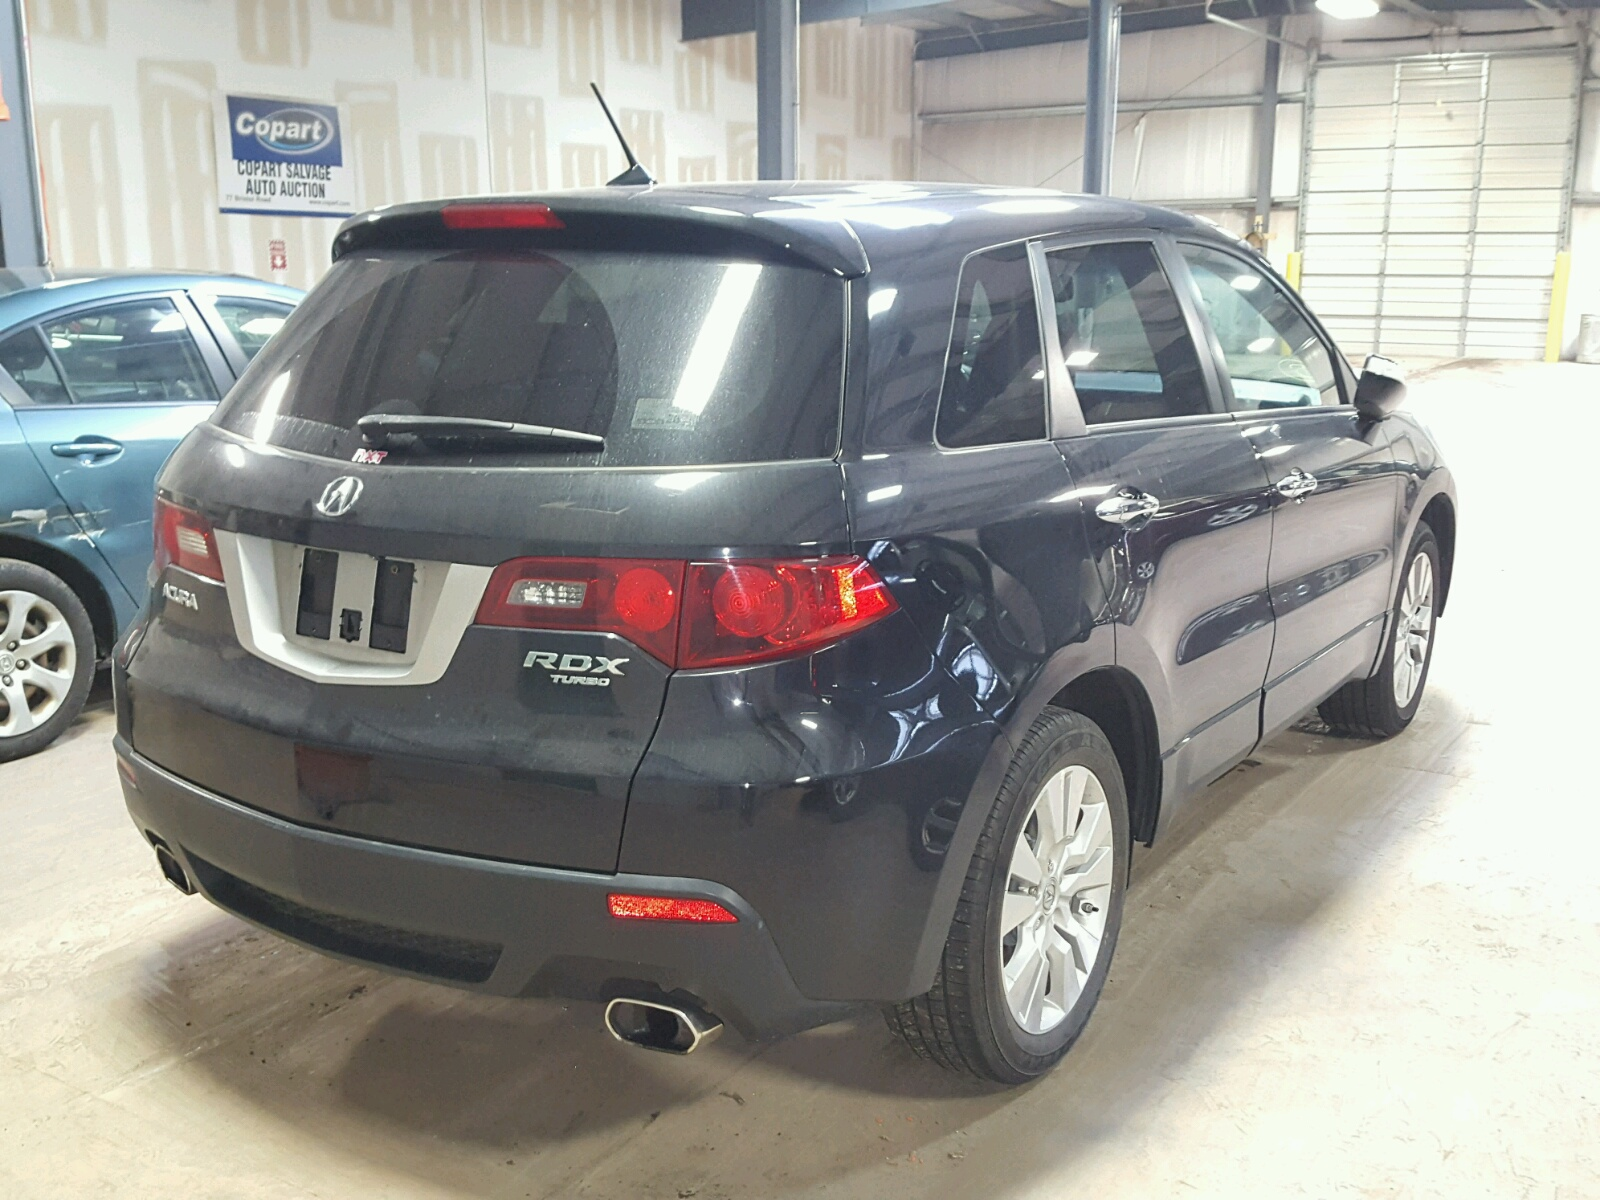 buy sale safety for rdx acura recalls